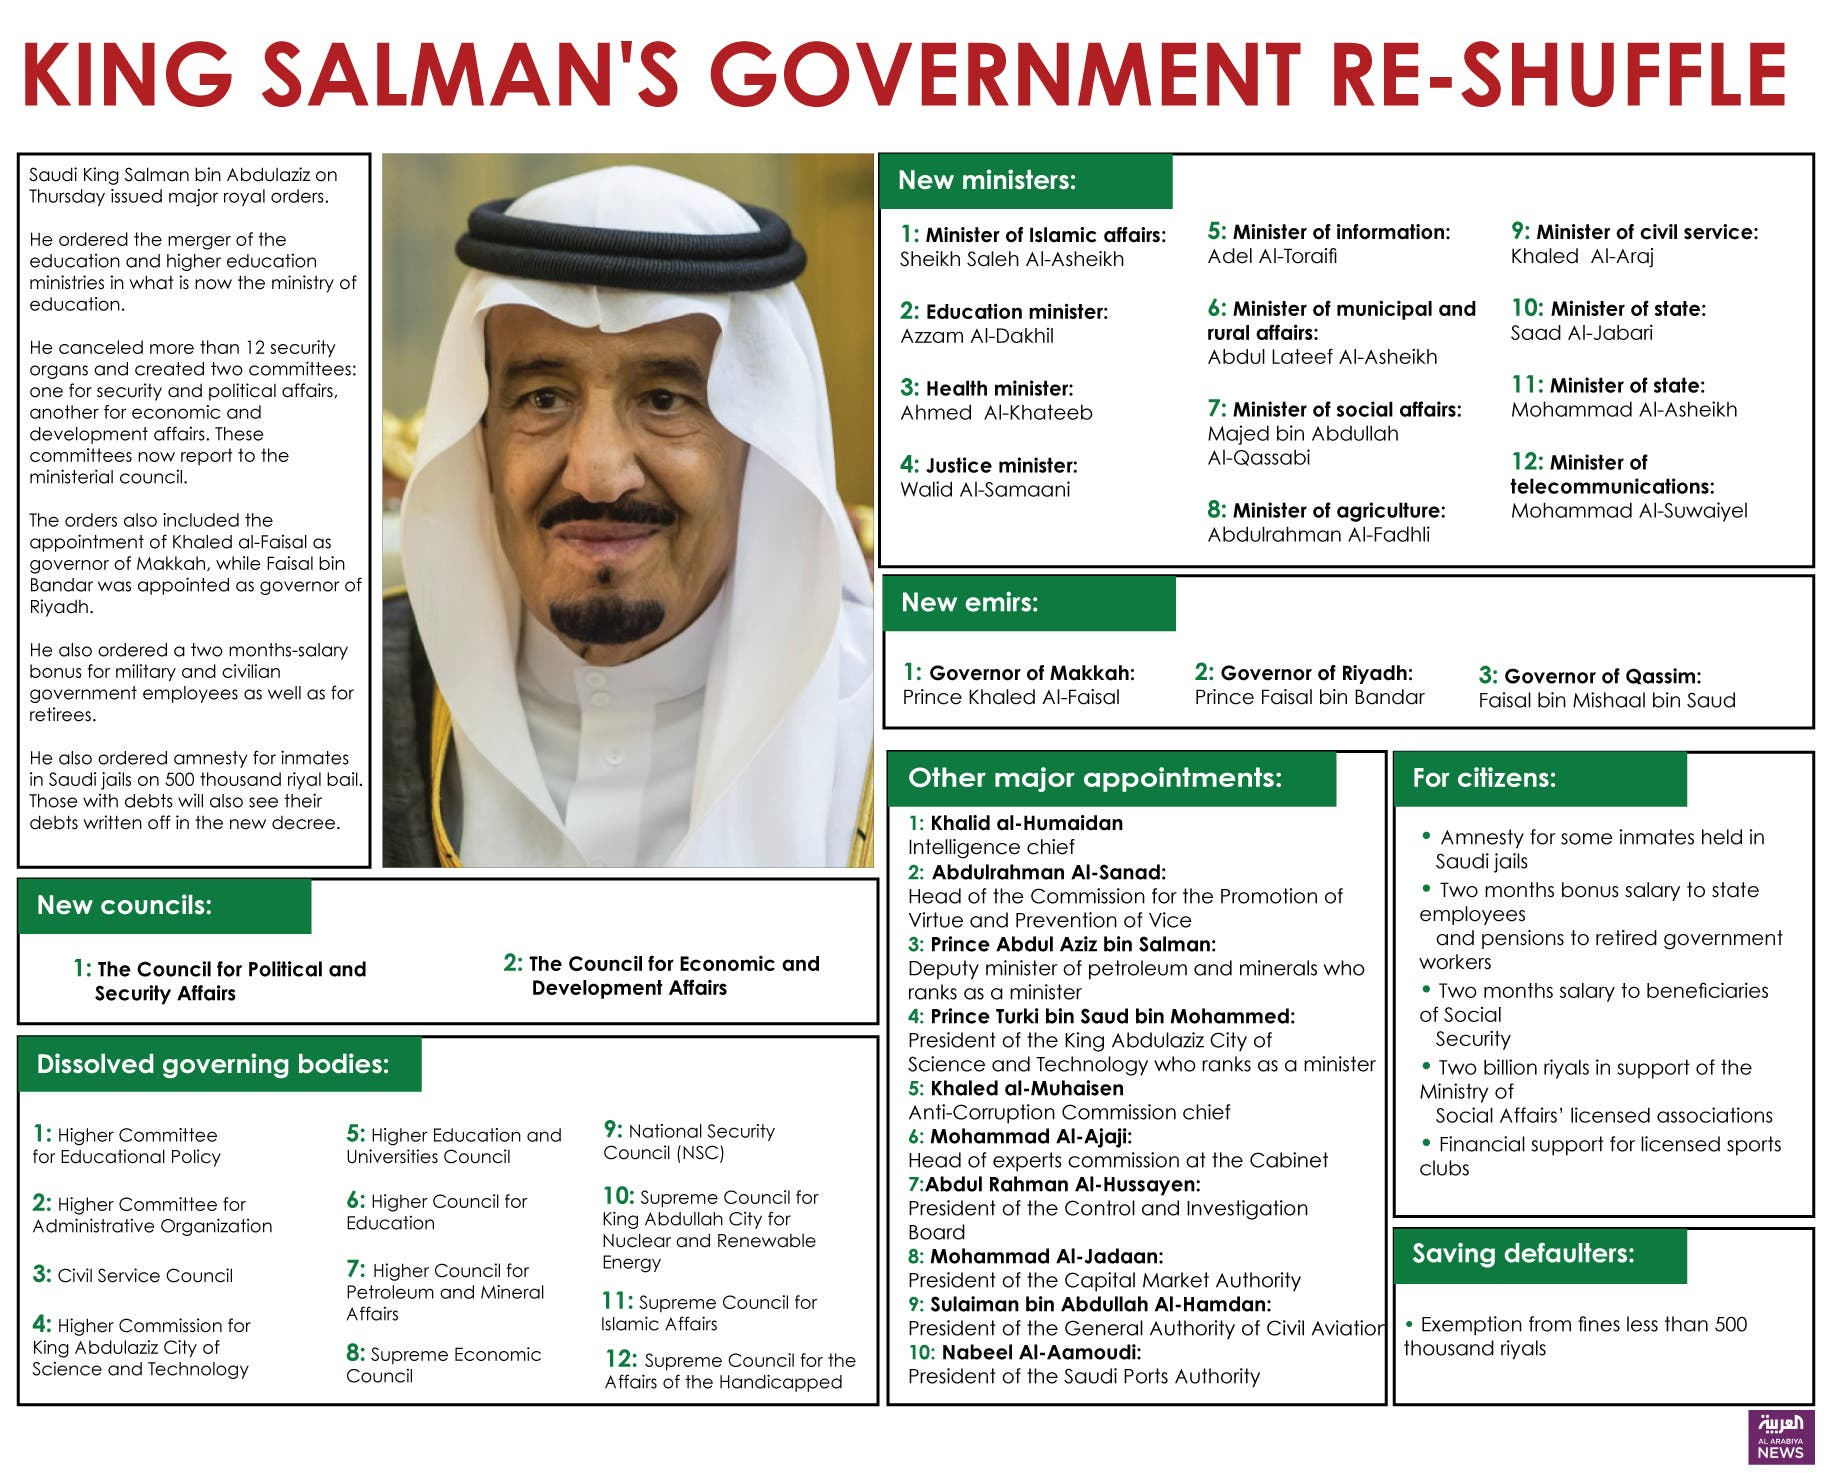 Info-graphic: King Salman's Government Reshuffle (designed Farwa Rizwan / Al Arabiya News)